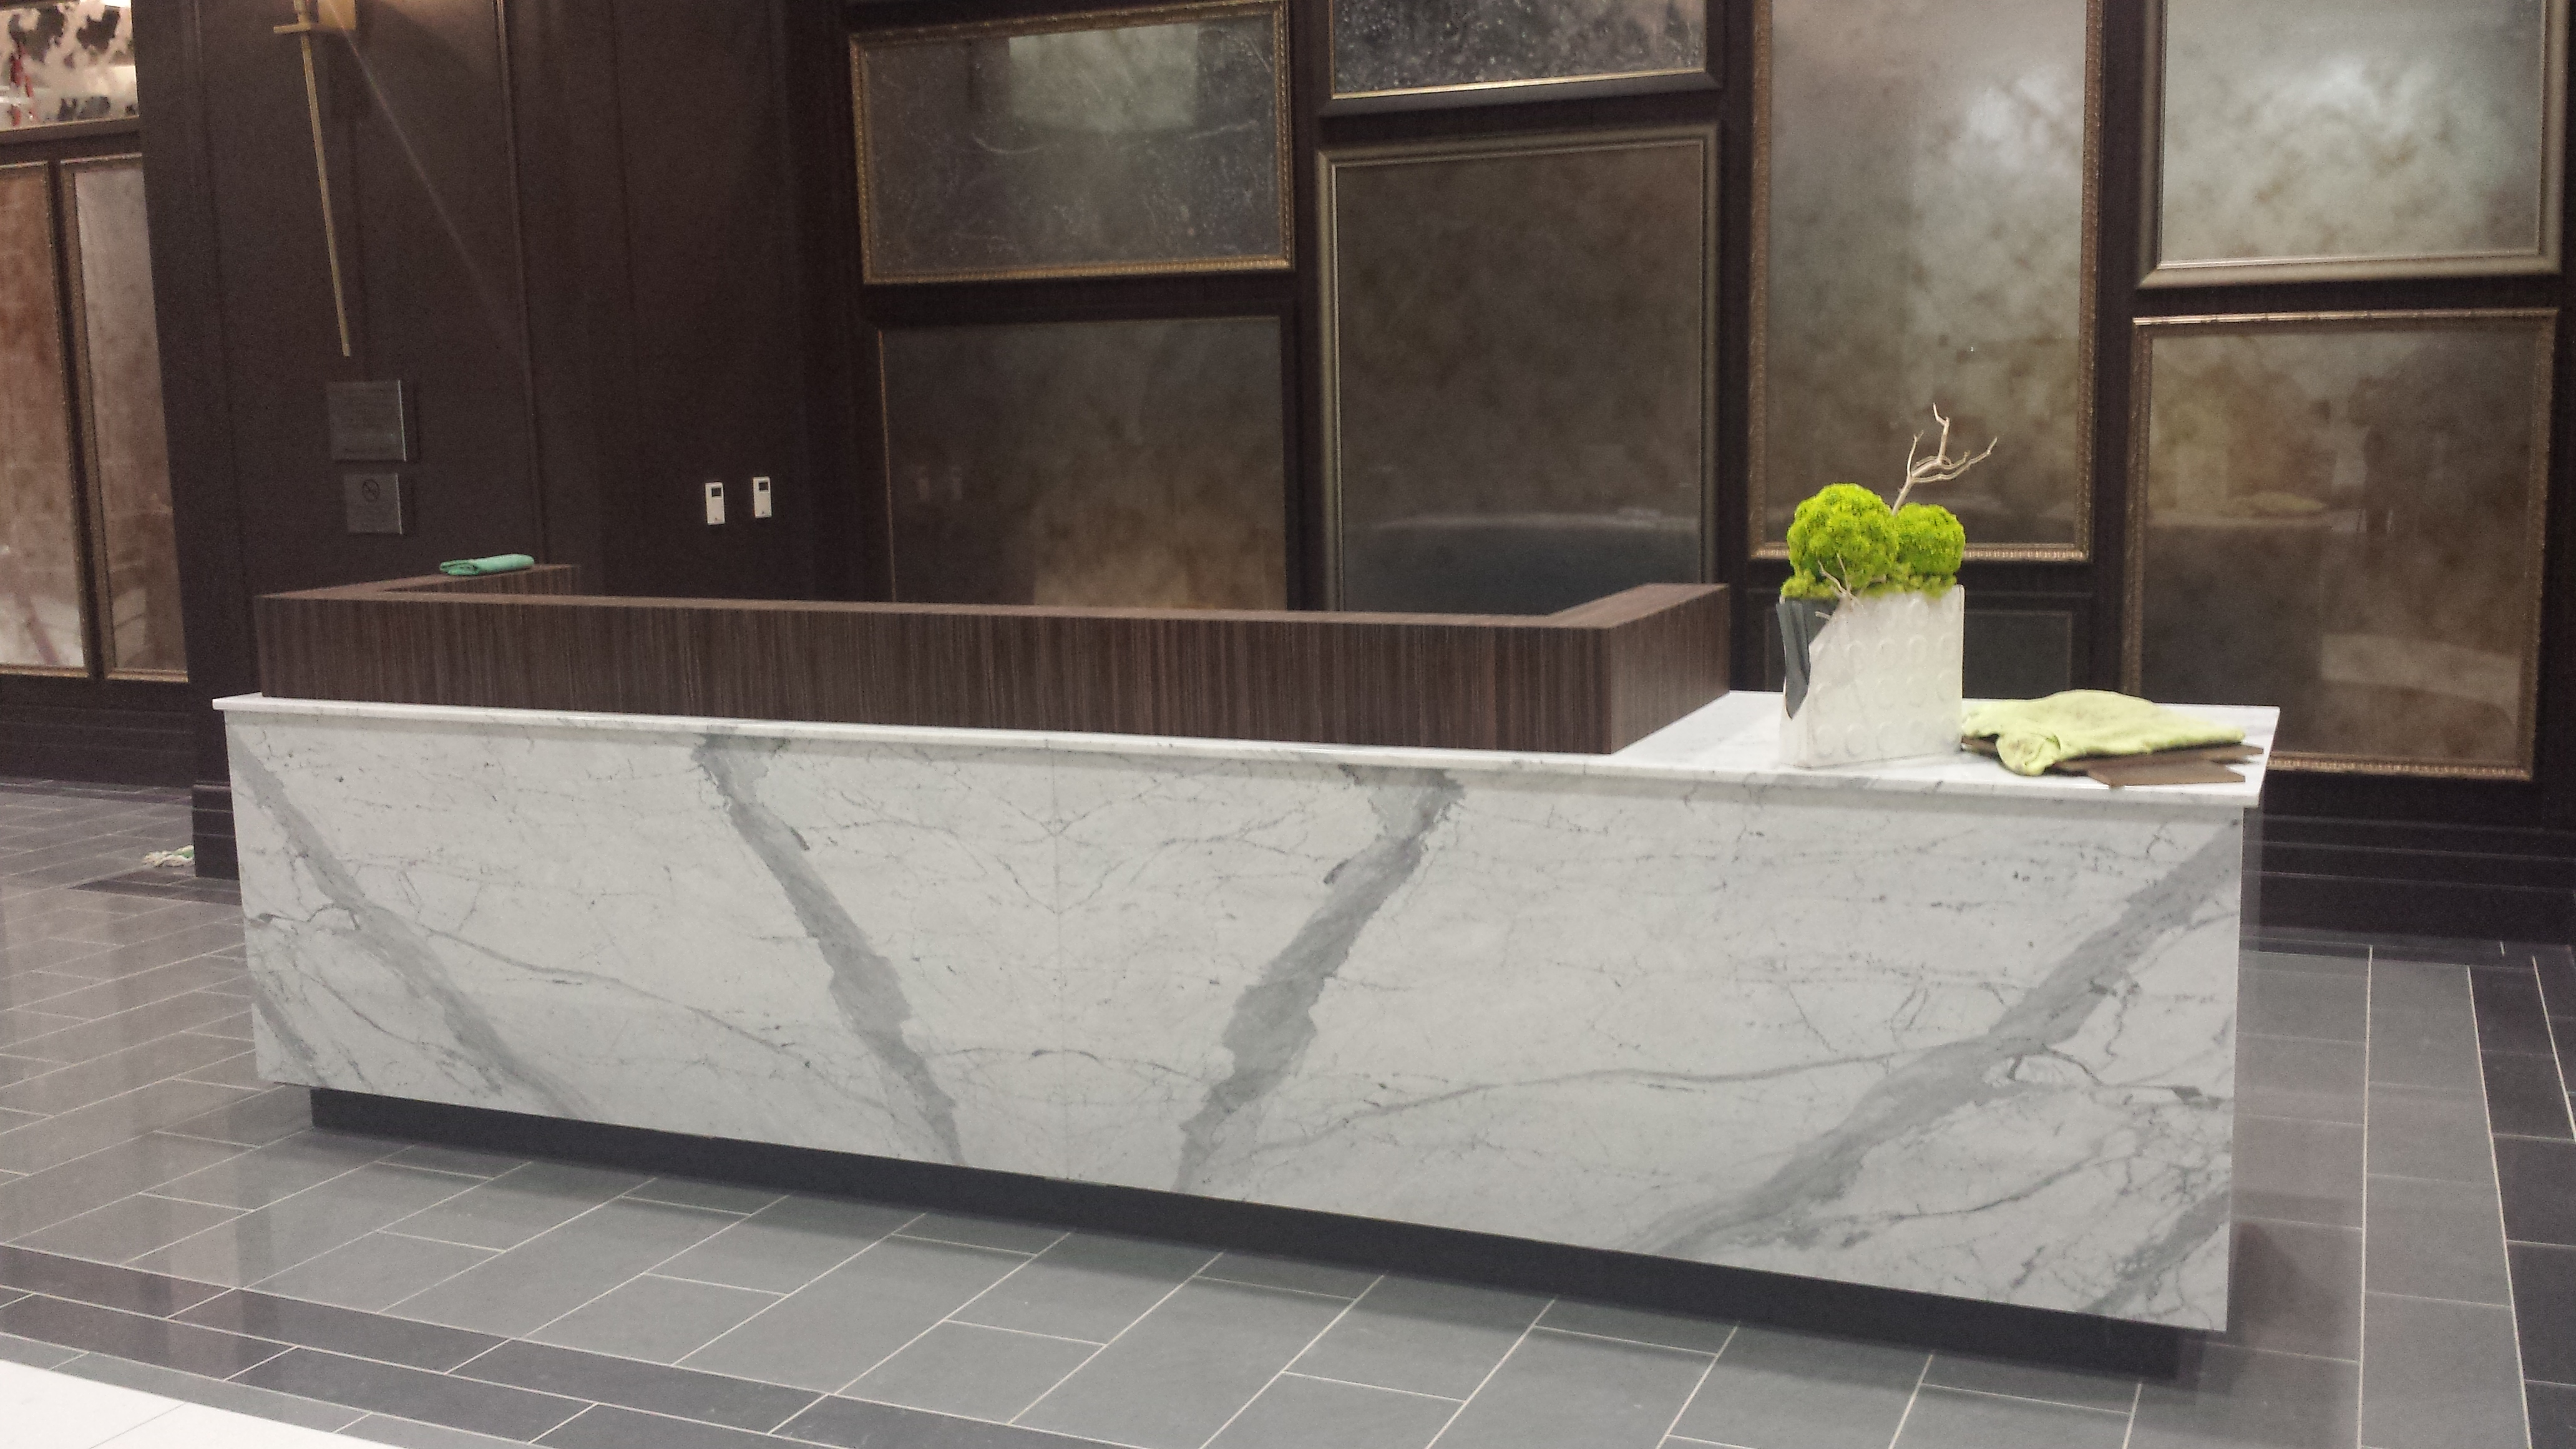 Top A Joy of Granite & Natural Stone - Commercial Tops Images | ProView SE98